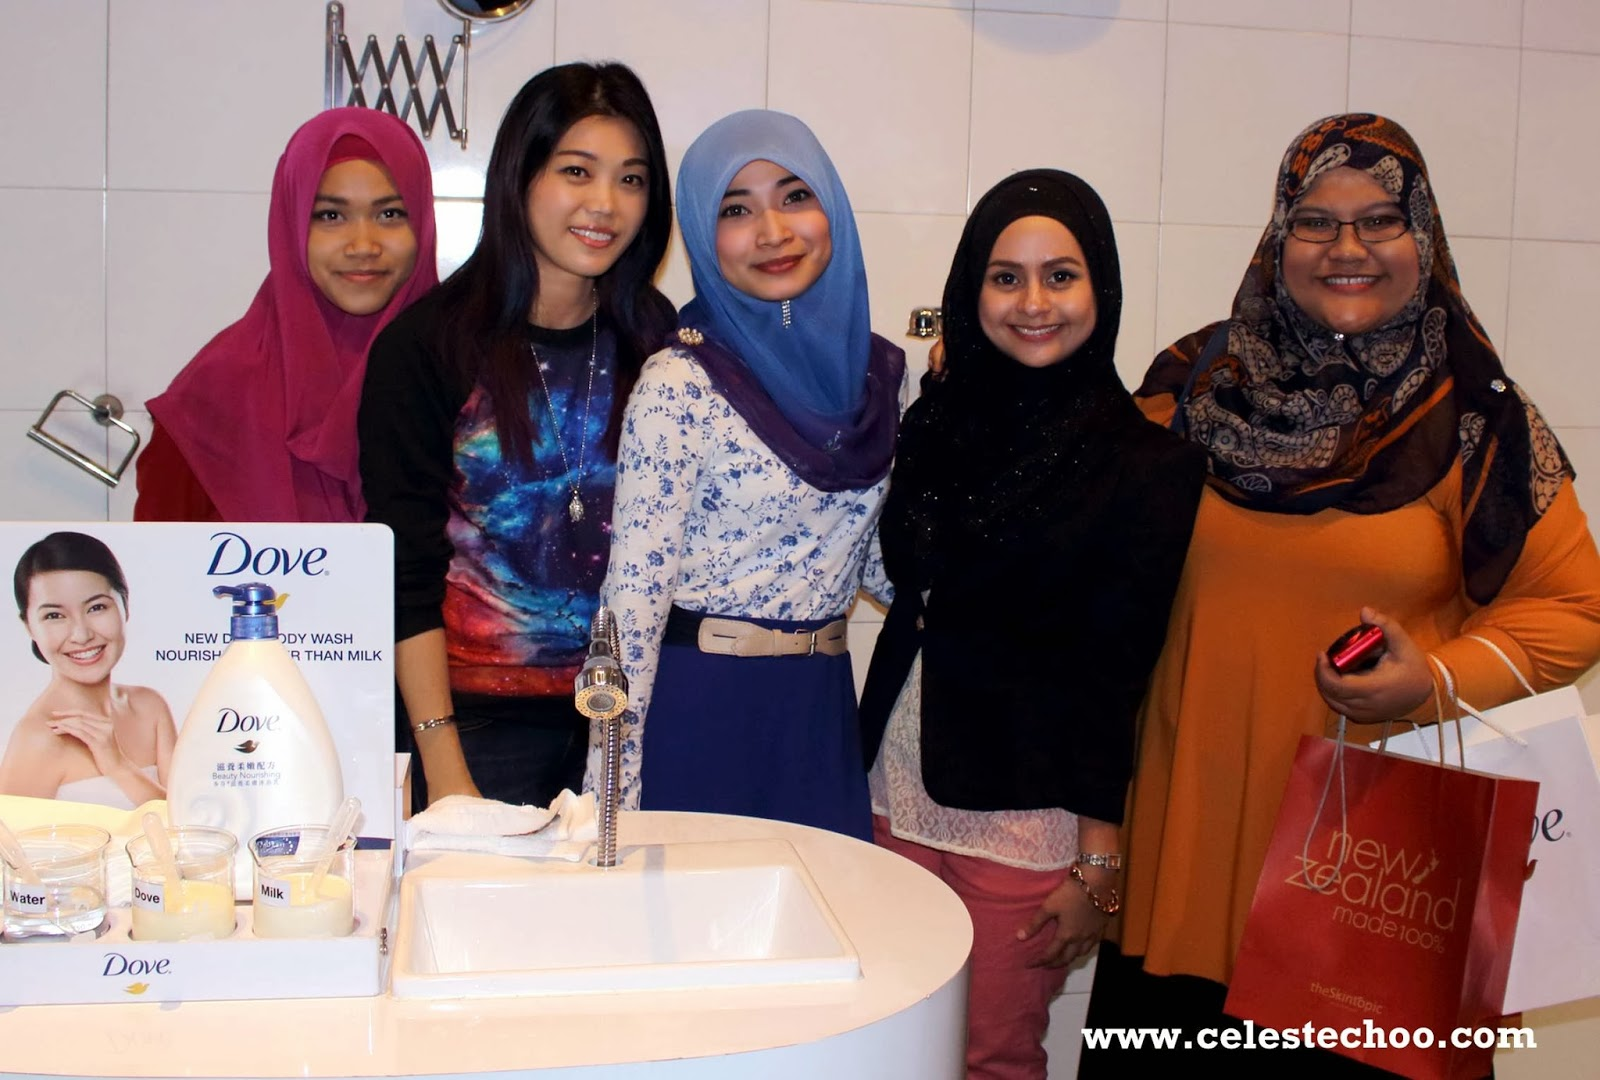 dove-school-of-skindulgence-malaysia-launch